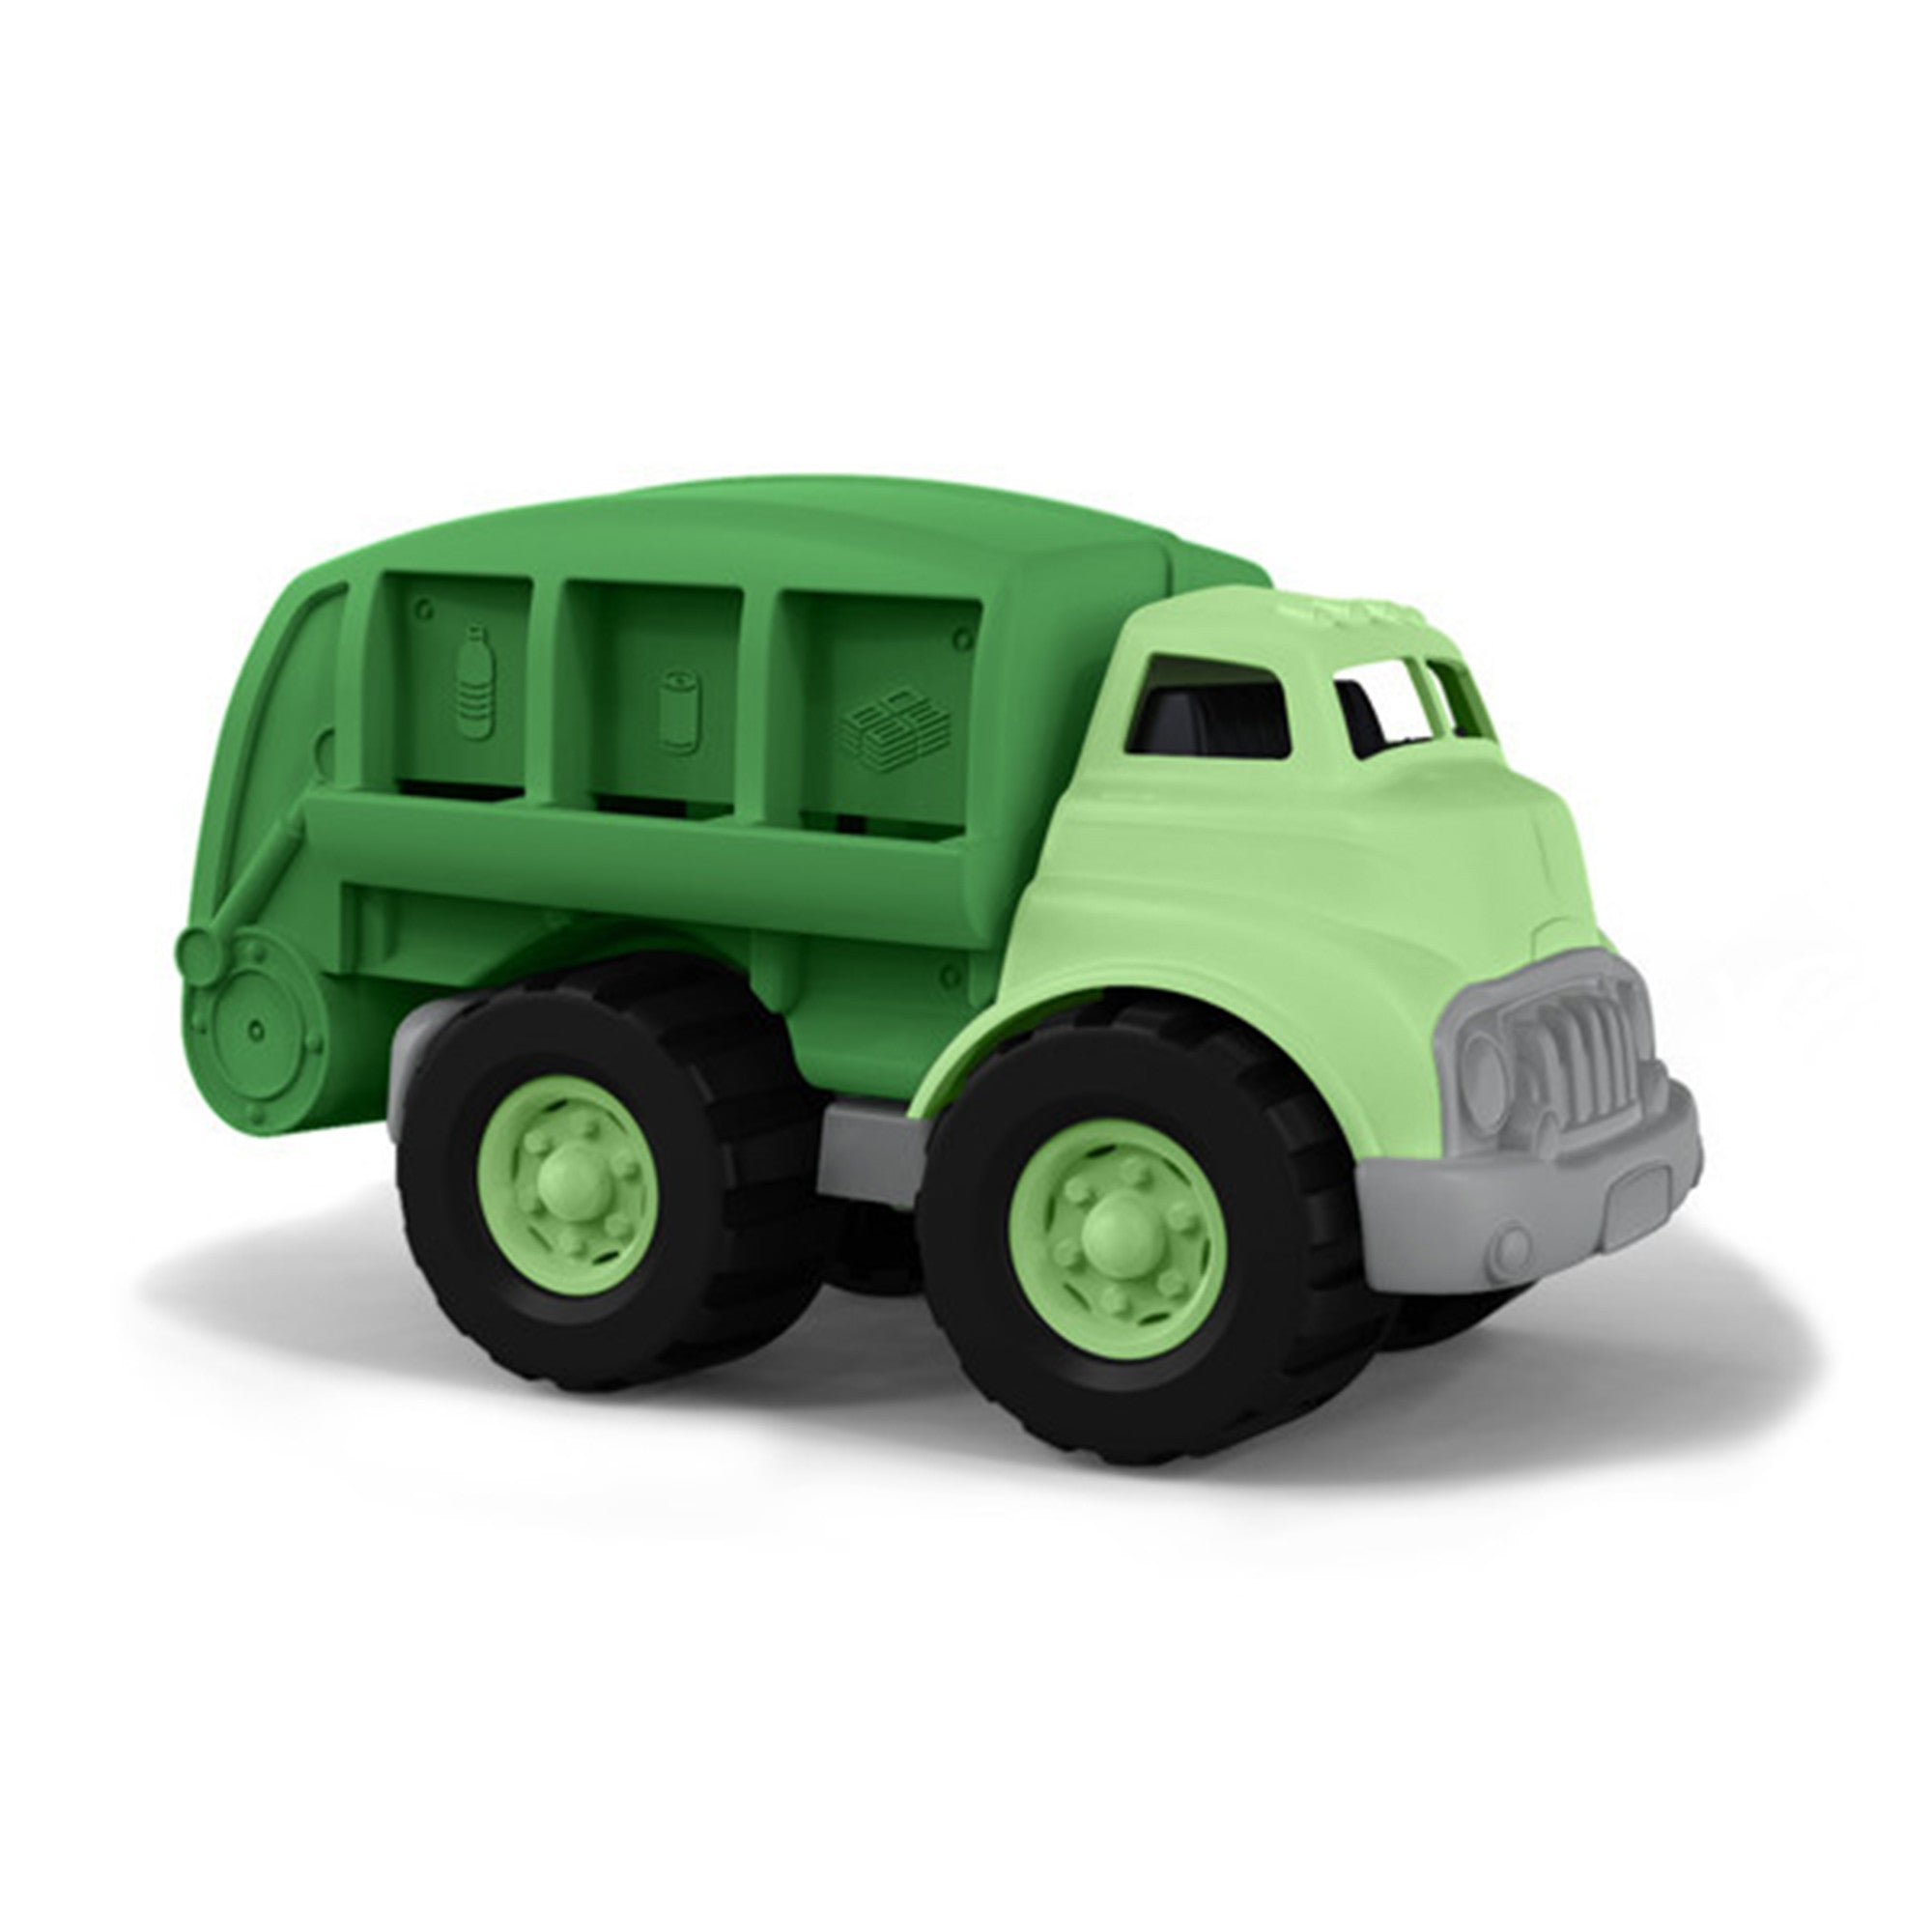 Green Toys Recycling Truck Green Toys Play Vehicles at Little Earth Nest Eco Shop